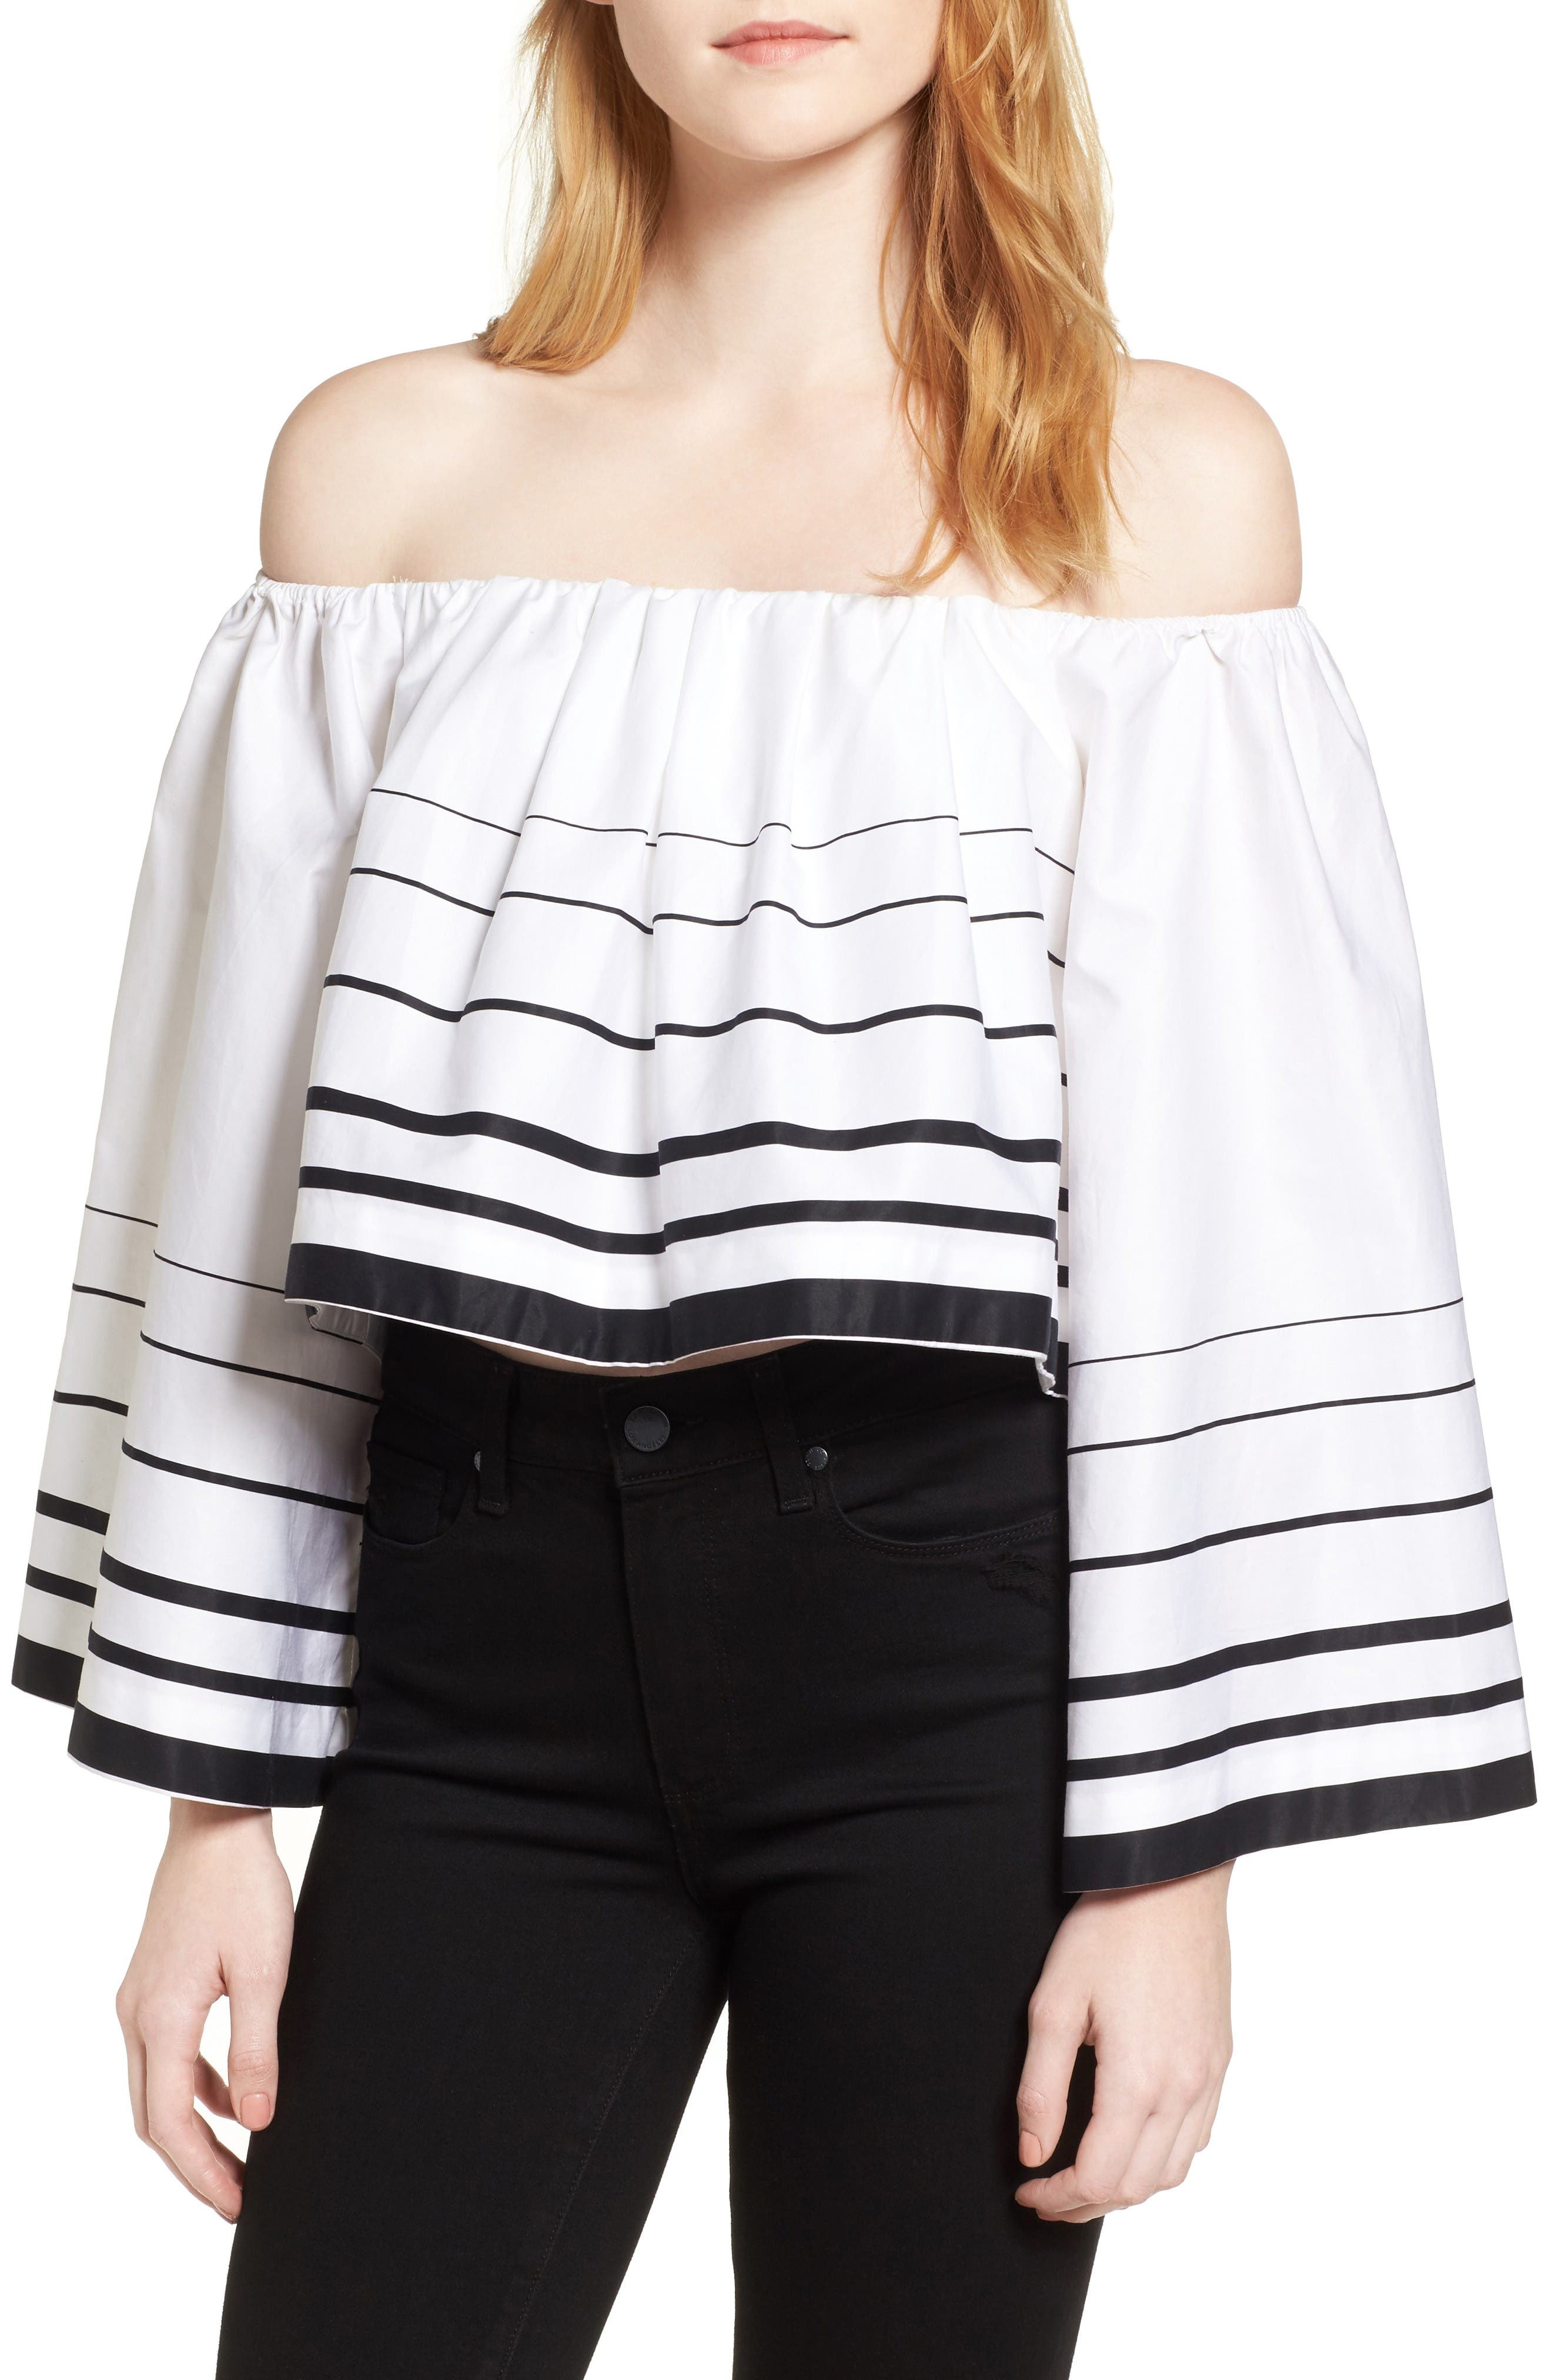 Main Image - KENDALL + KYLIE Stripe Off the Shoulder Top